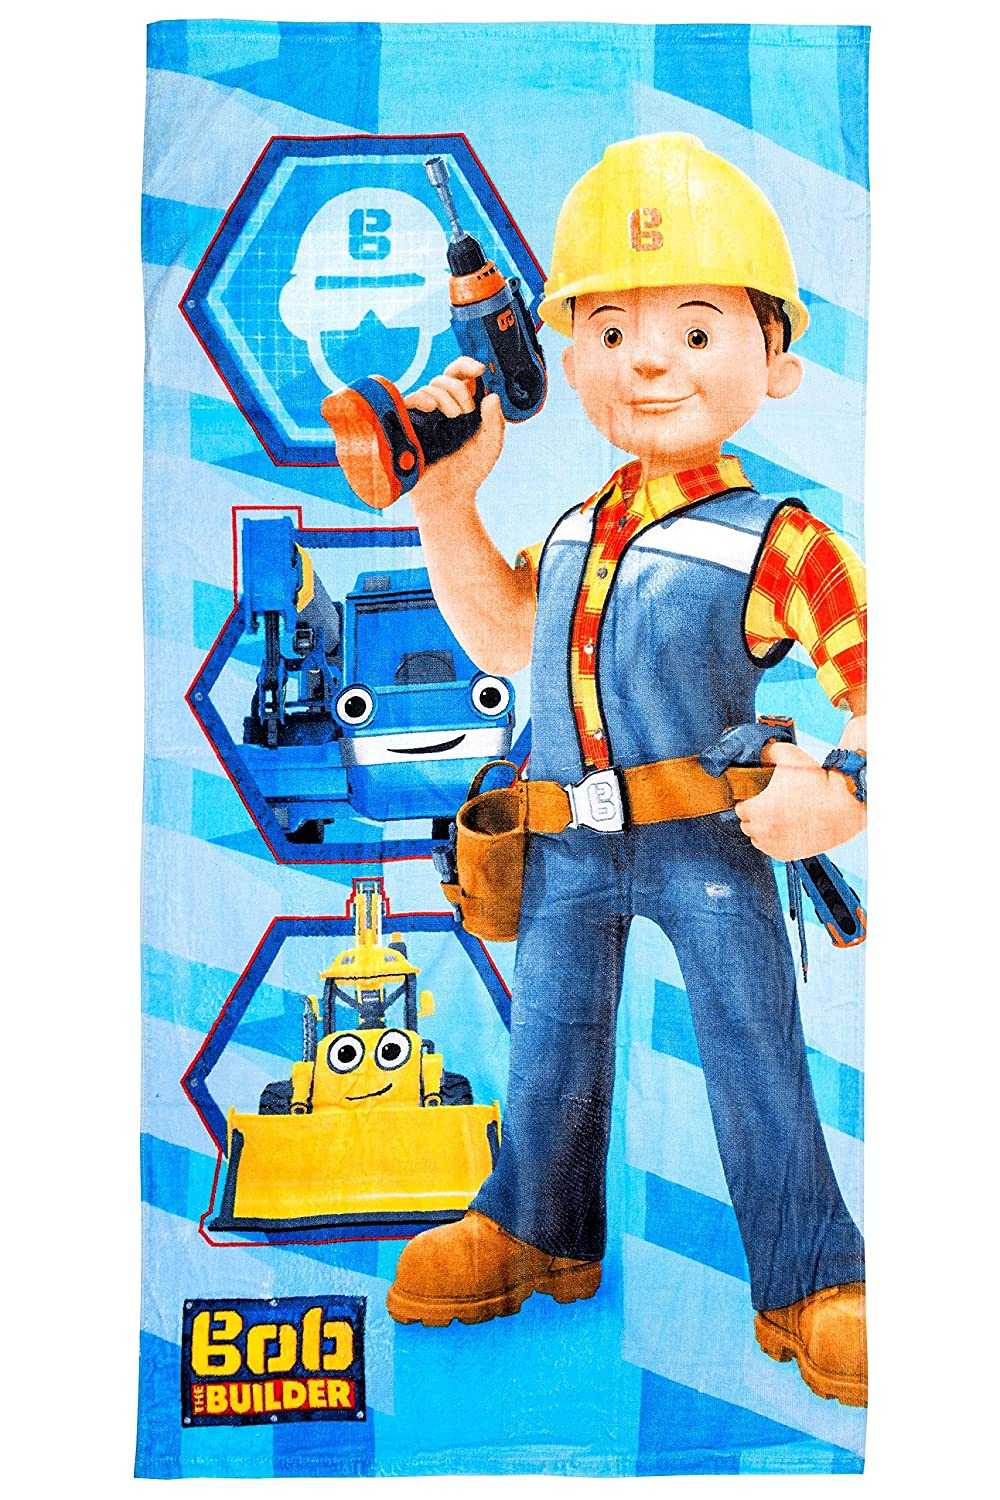 Bob the Builder Beach Towel / Bath Towel, 70 x 140 cm, Original Licensed Product gibra 444782STBOBa